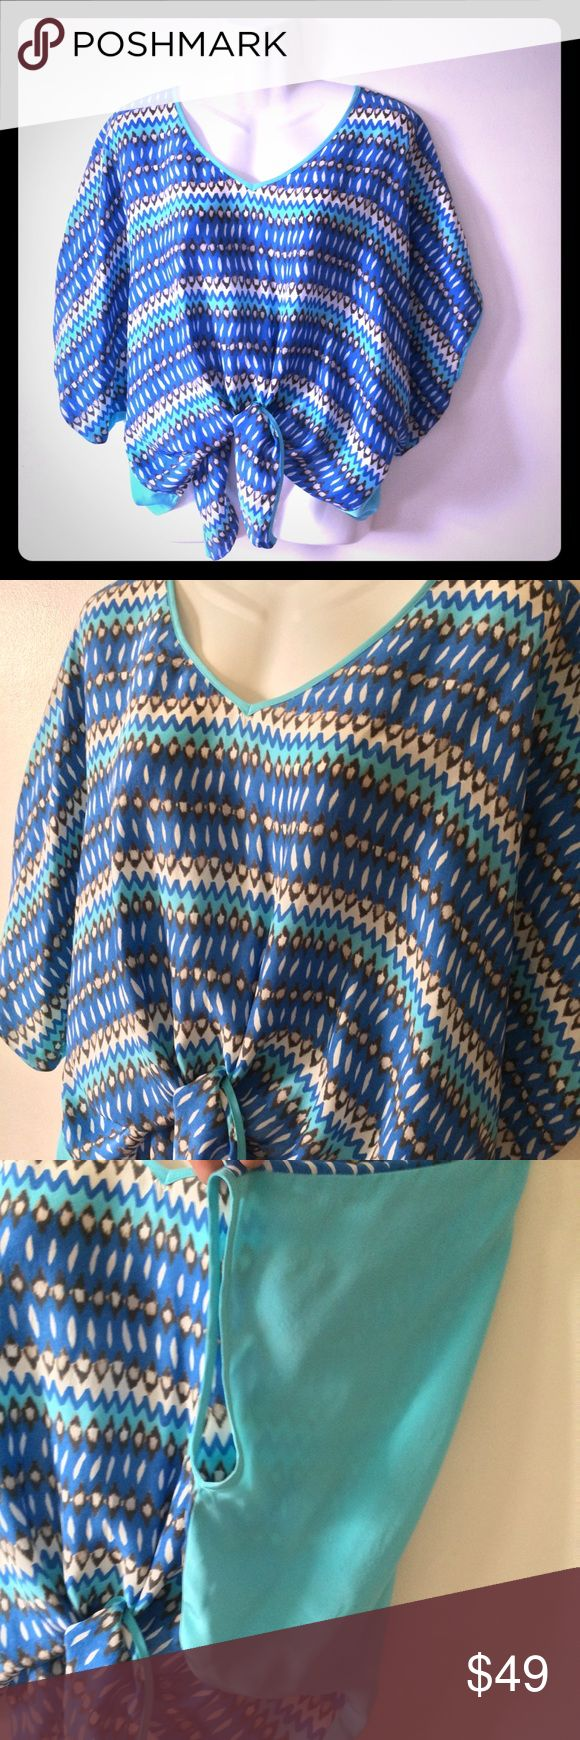 """Fifteen twenty guc szXS tiefront Aztec prnt blouse Fifteen twenty guc szXS tie front blouse Aztec Print front solid teal/ med blue back  Great gently used condition with no noted rips or tears. Minor, (smaller than pencil eraser, and not noticed unless up close)  stains back right shoulder   Garment is oversized and fits larger than a standard xs approx 48"""" chest 23"""" length  Made in USA  M1 Fifteen Twenty Tops Blouses"""